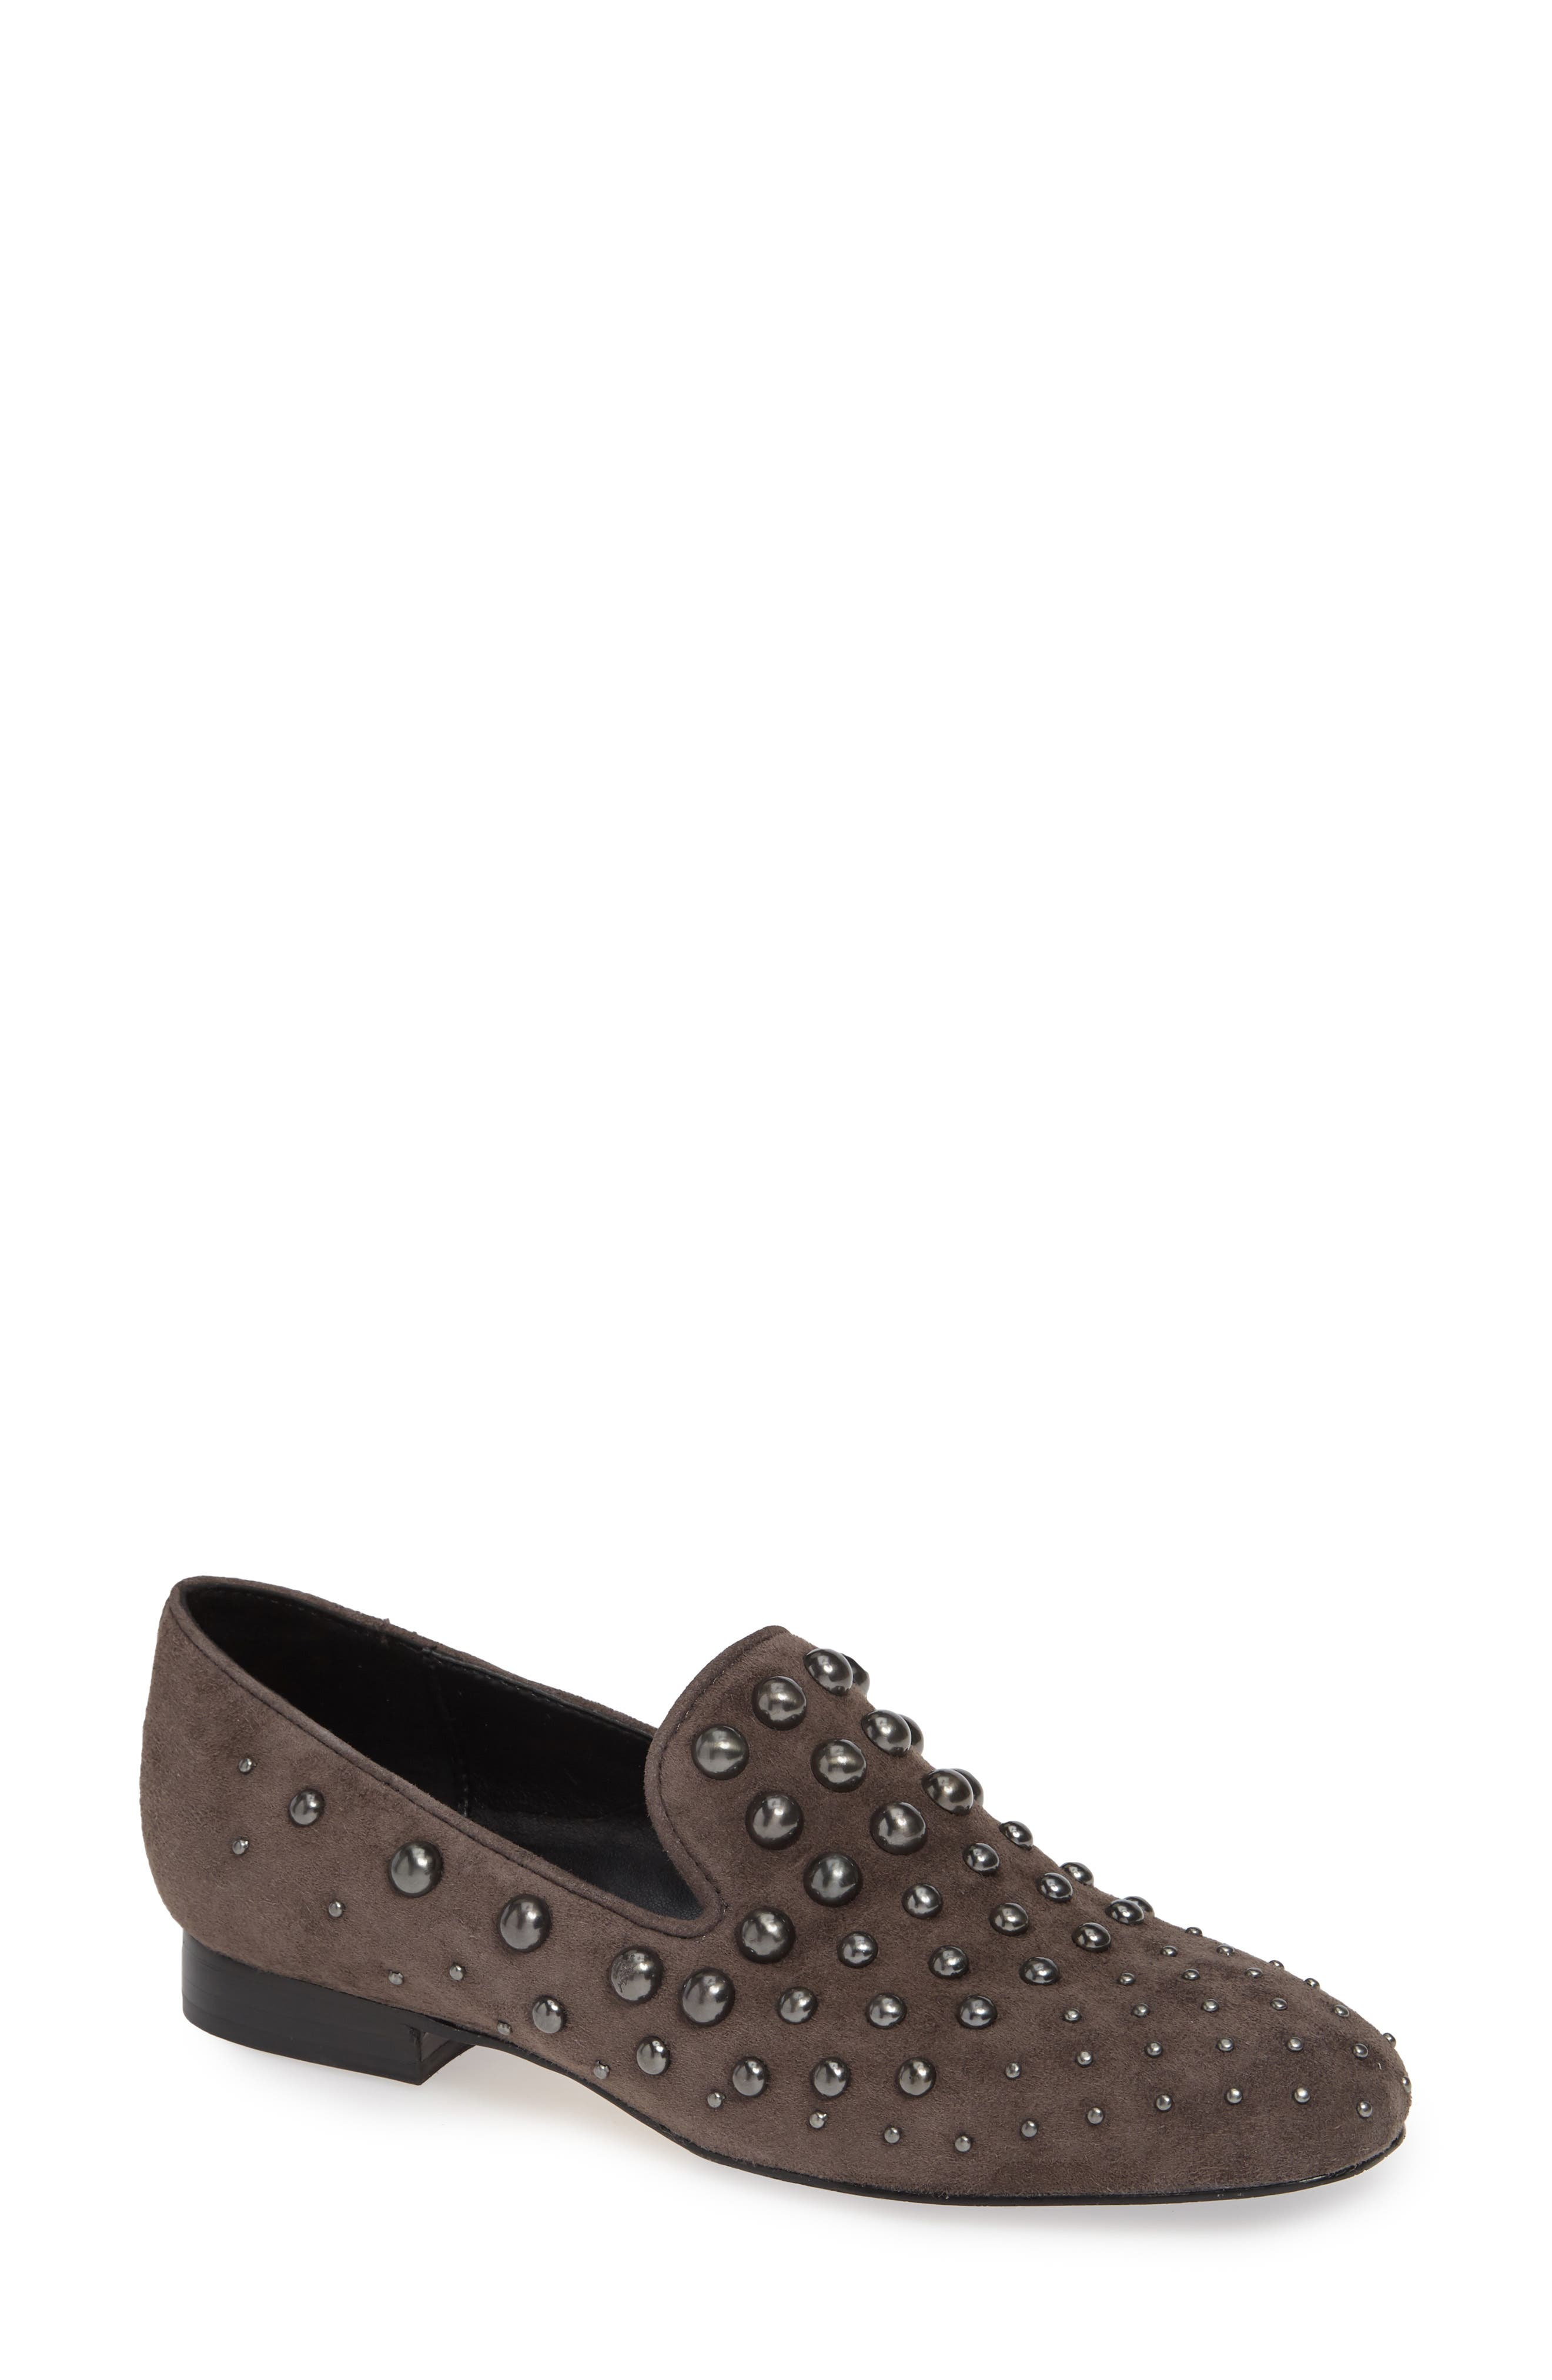 DONALD PLINER Women'S Loyd Almond Toe Studded Suede Loafers in Dark Taupe Suede